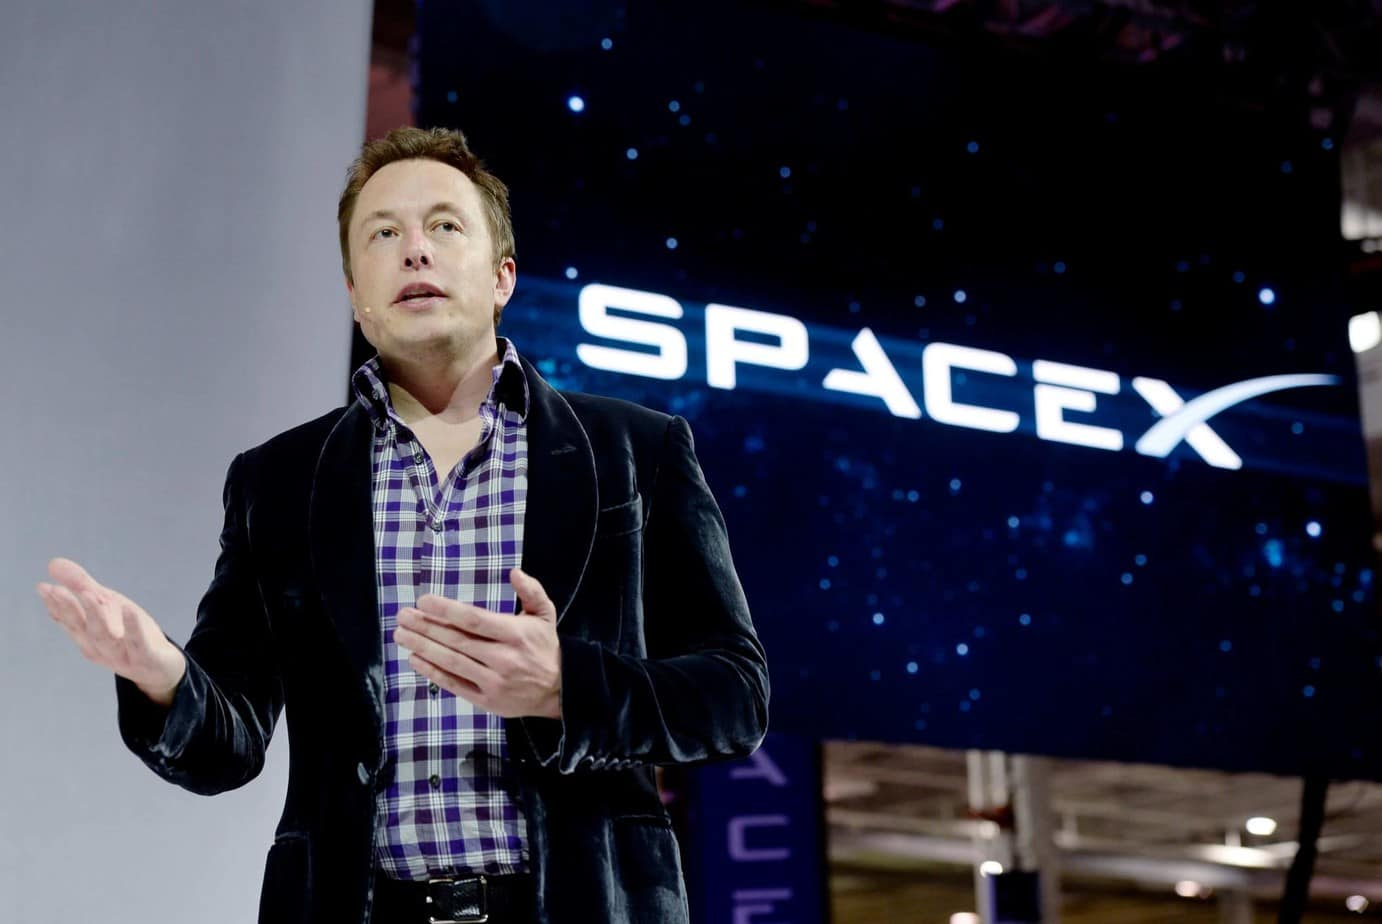 HBO is making a limited series about Elon Musk and the founding of SpaceX